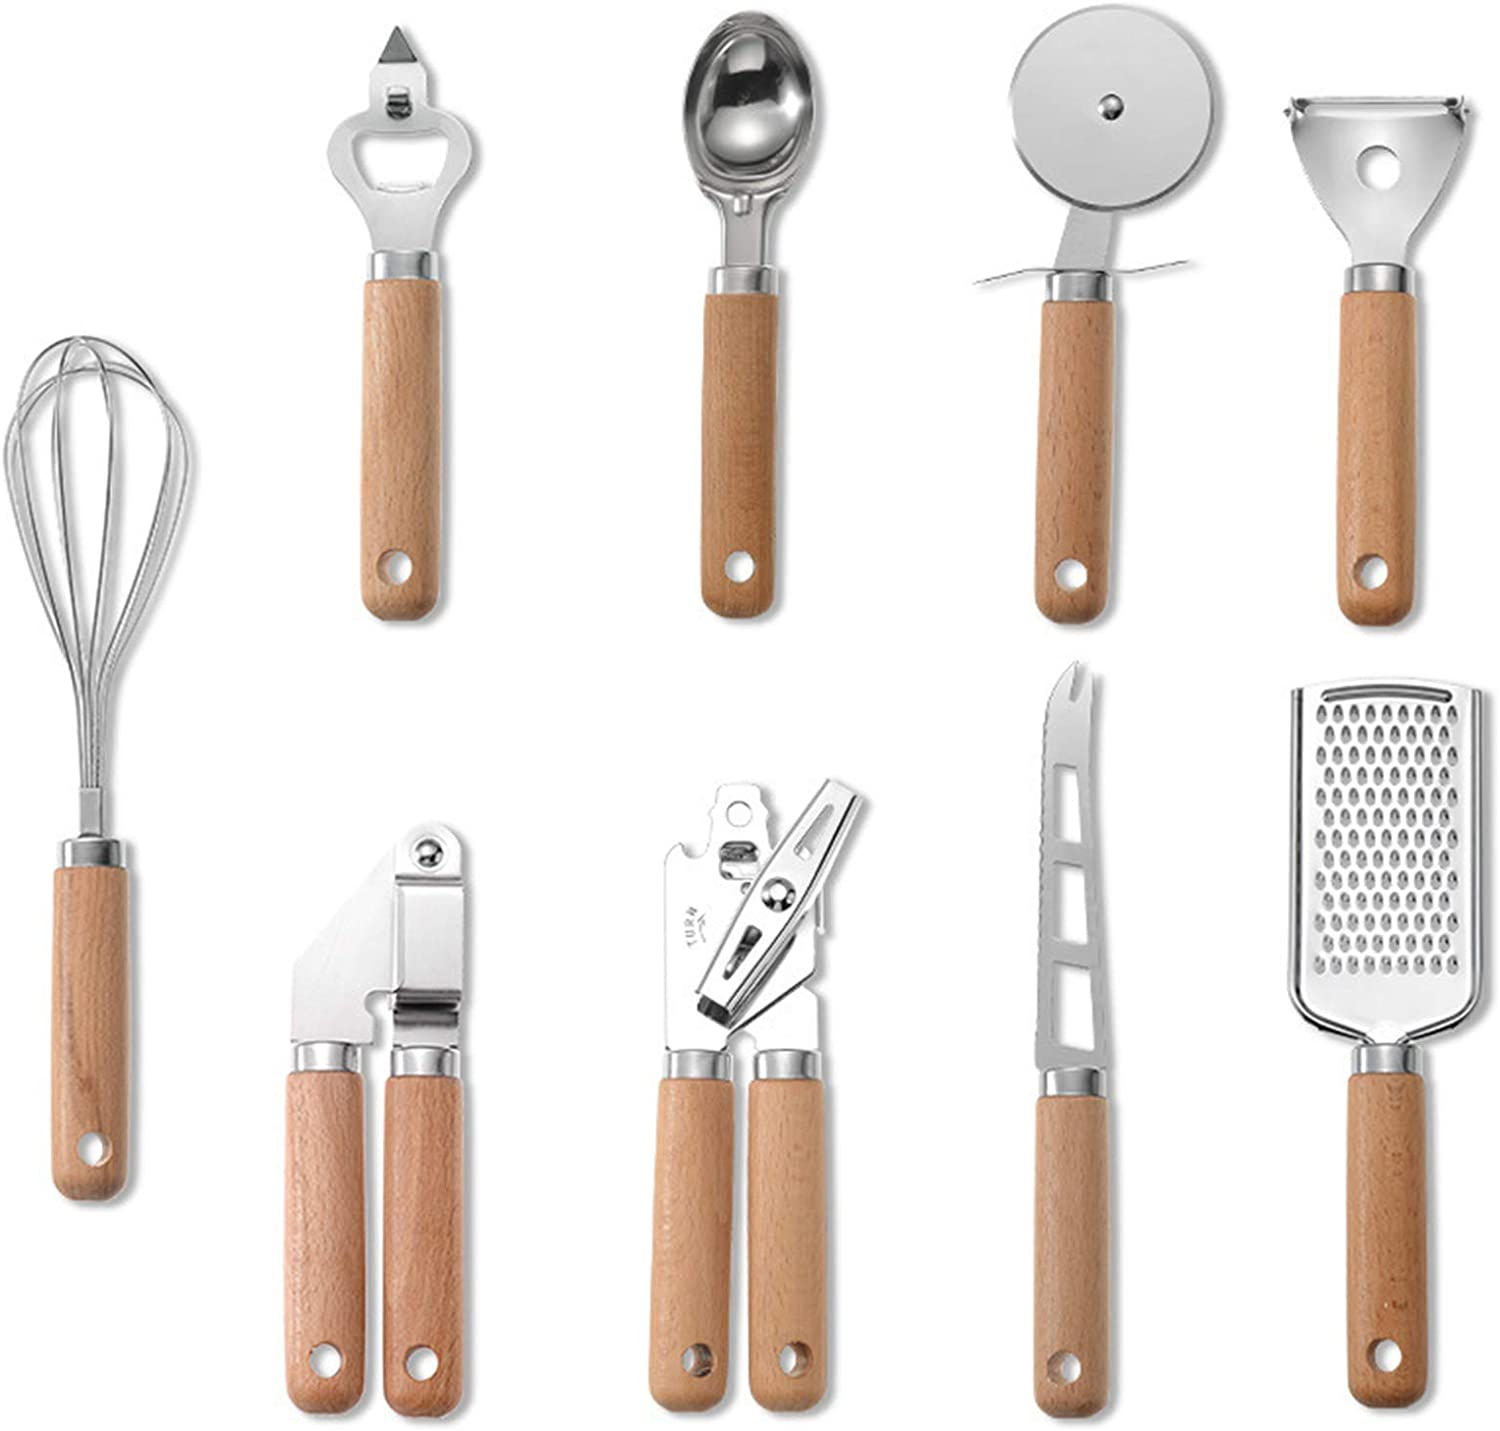 Challenge the lowest price Alapaste 9Pcs Kitchen Gadget Set Cash special price wit Steel Stainless Utensil